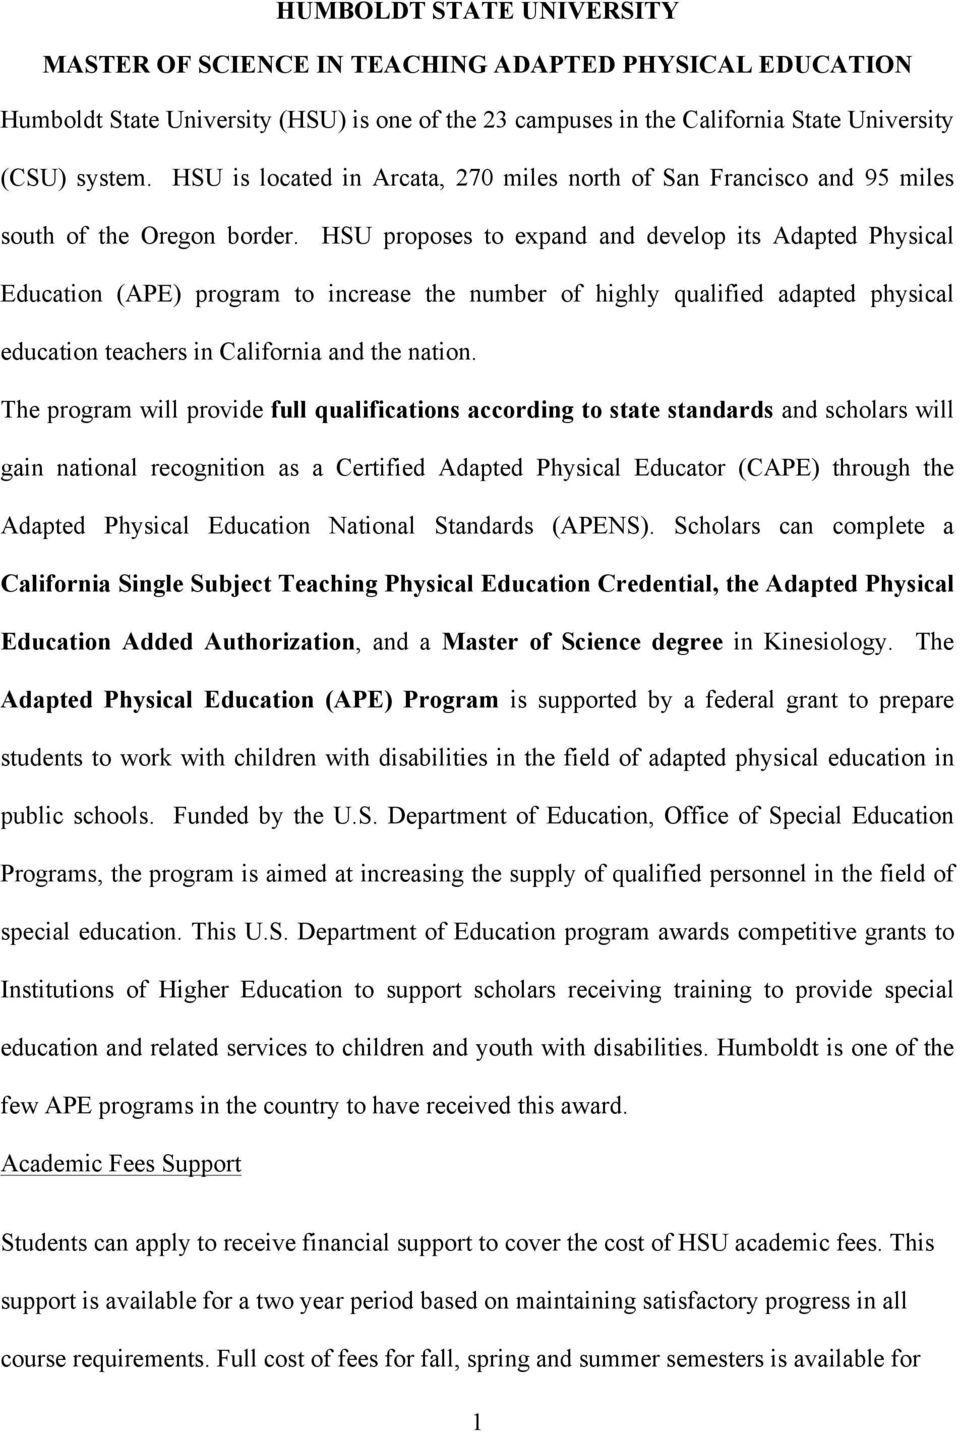 Humboldt State University Master Of Science In Teaching